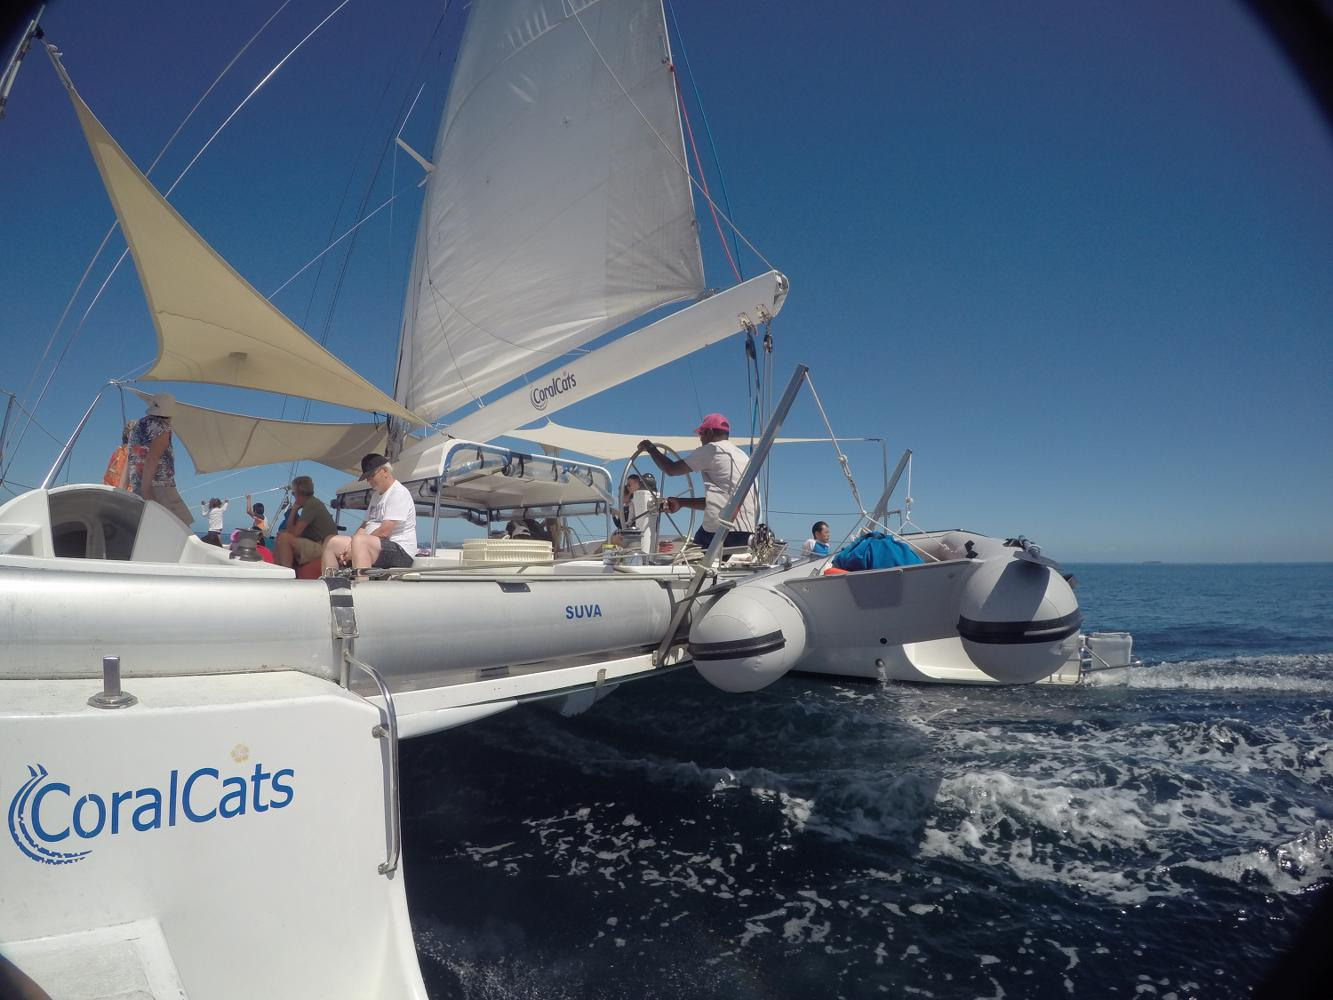 Day tour on Coral Cats with swimming, snorkelling and sailing in Fiji (3)